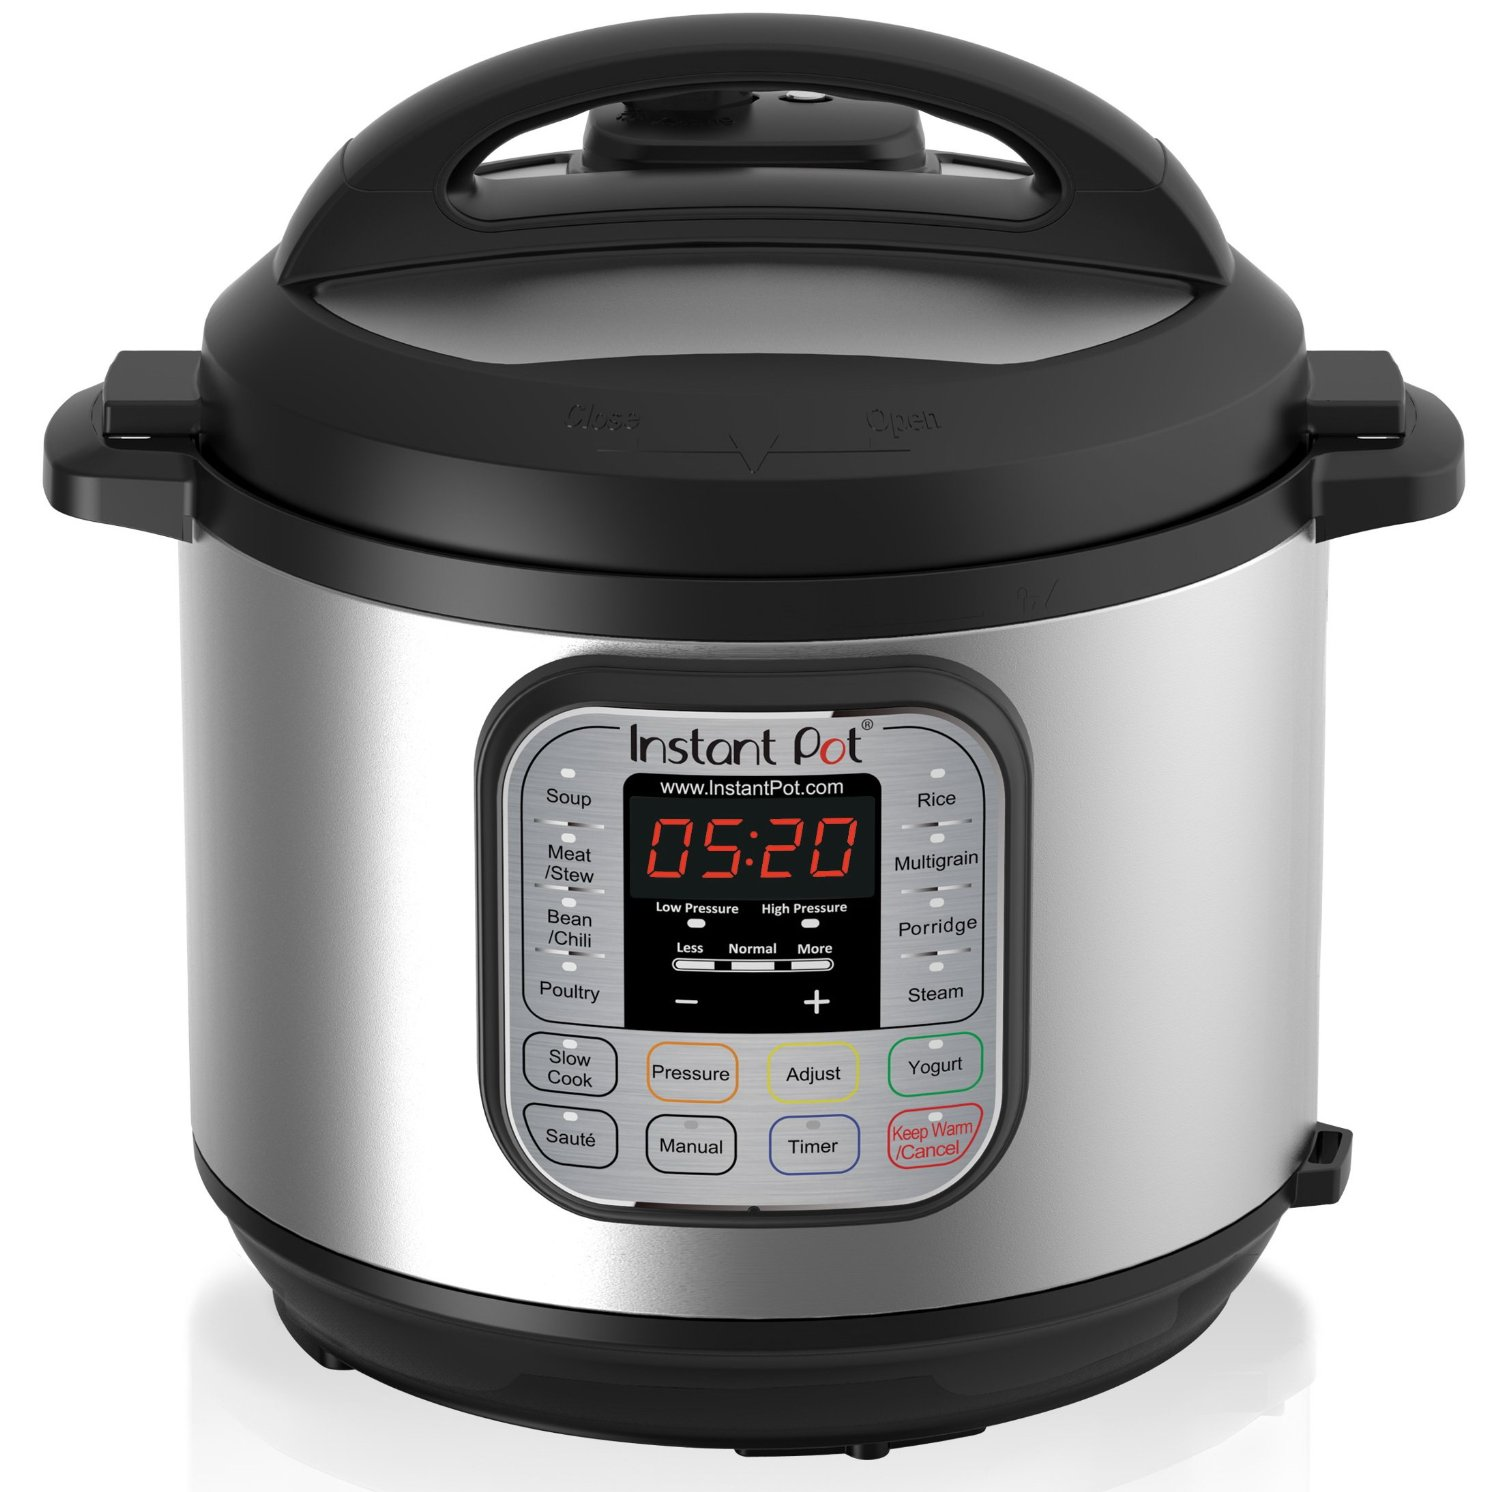 Instant Pot Company Instant Pot IP-DUO60 7-in-1 Programmable Pressure Cooker with Stainless Steel Cooking Pot and Exterior, 6-Quart/1000-watt, Latest 3rd Generation Technology